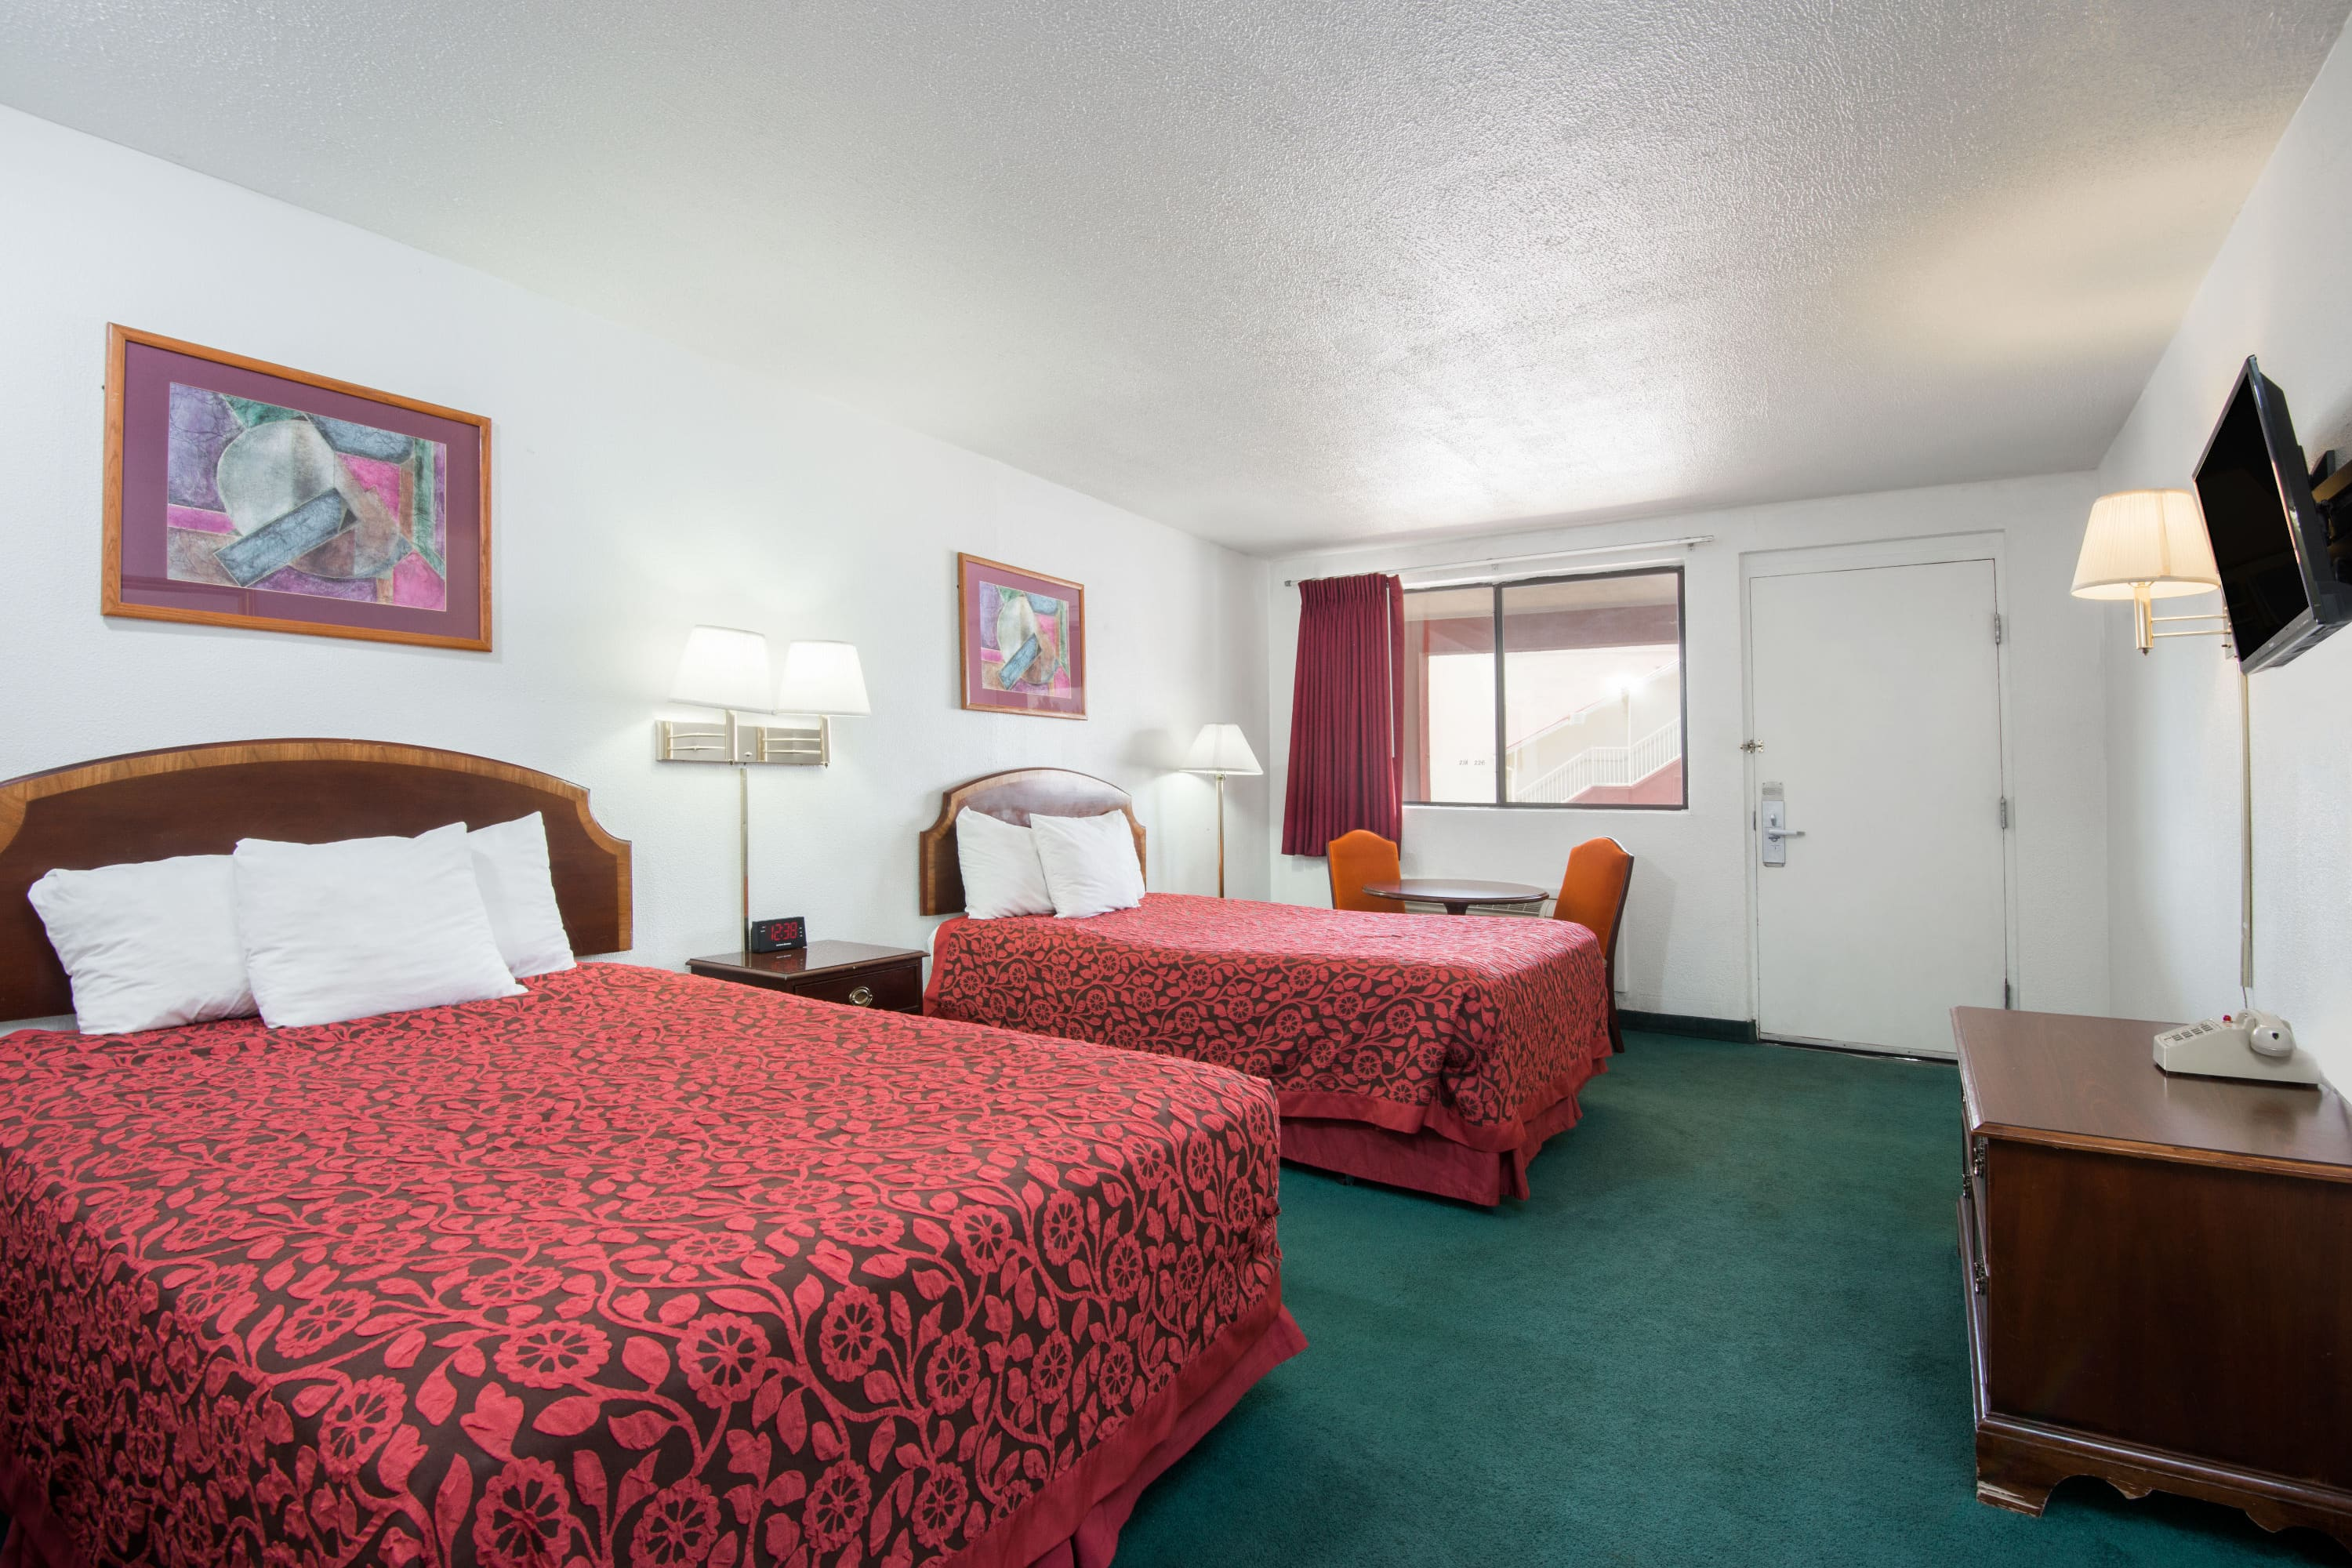 Guest room at the Days Inn Gallup in Gallup, New Mexico